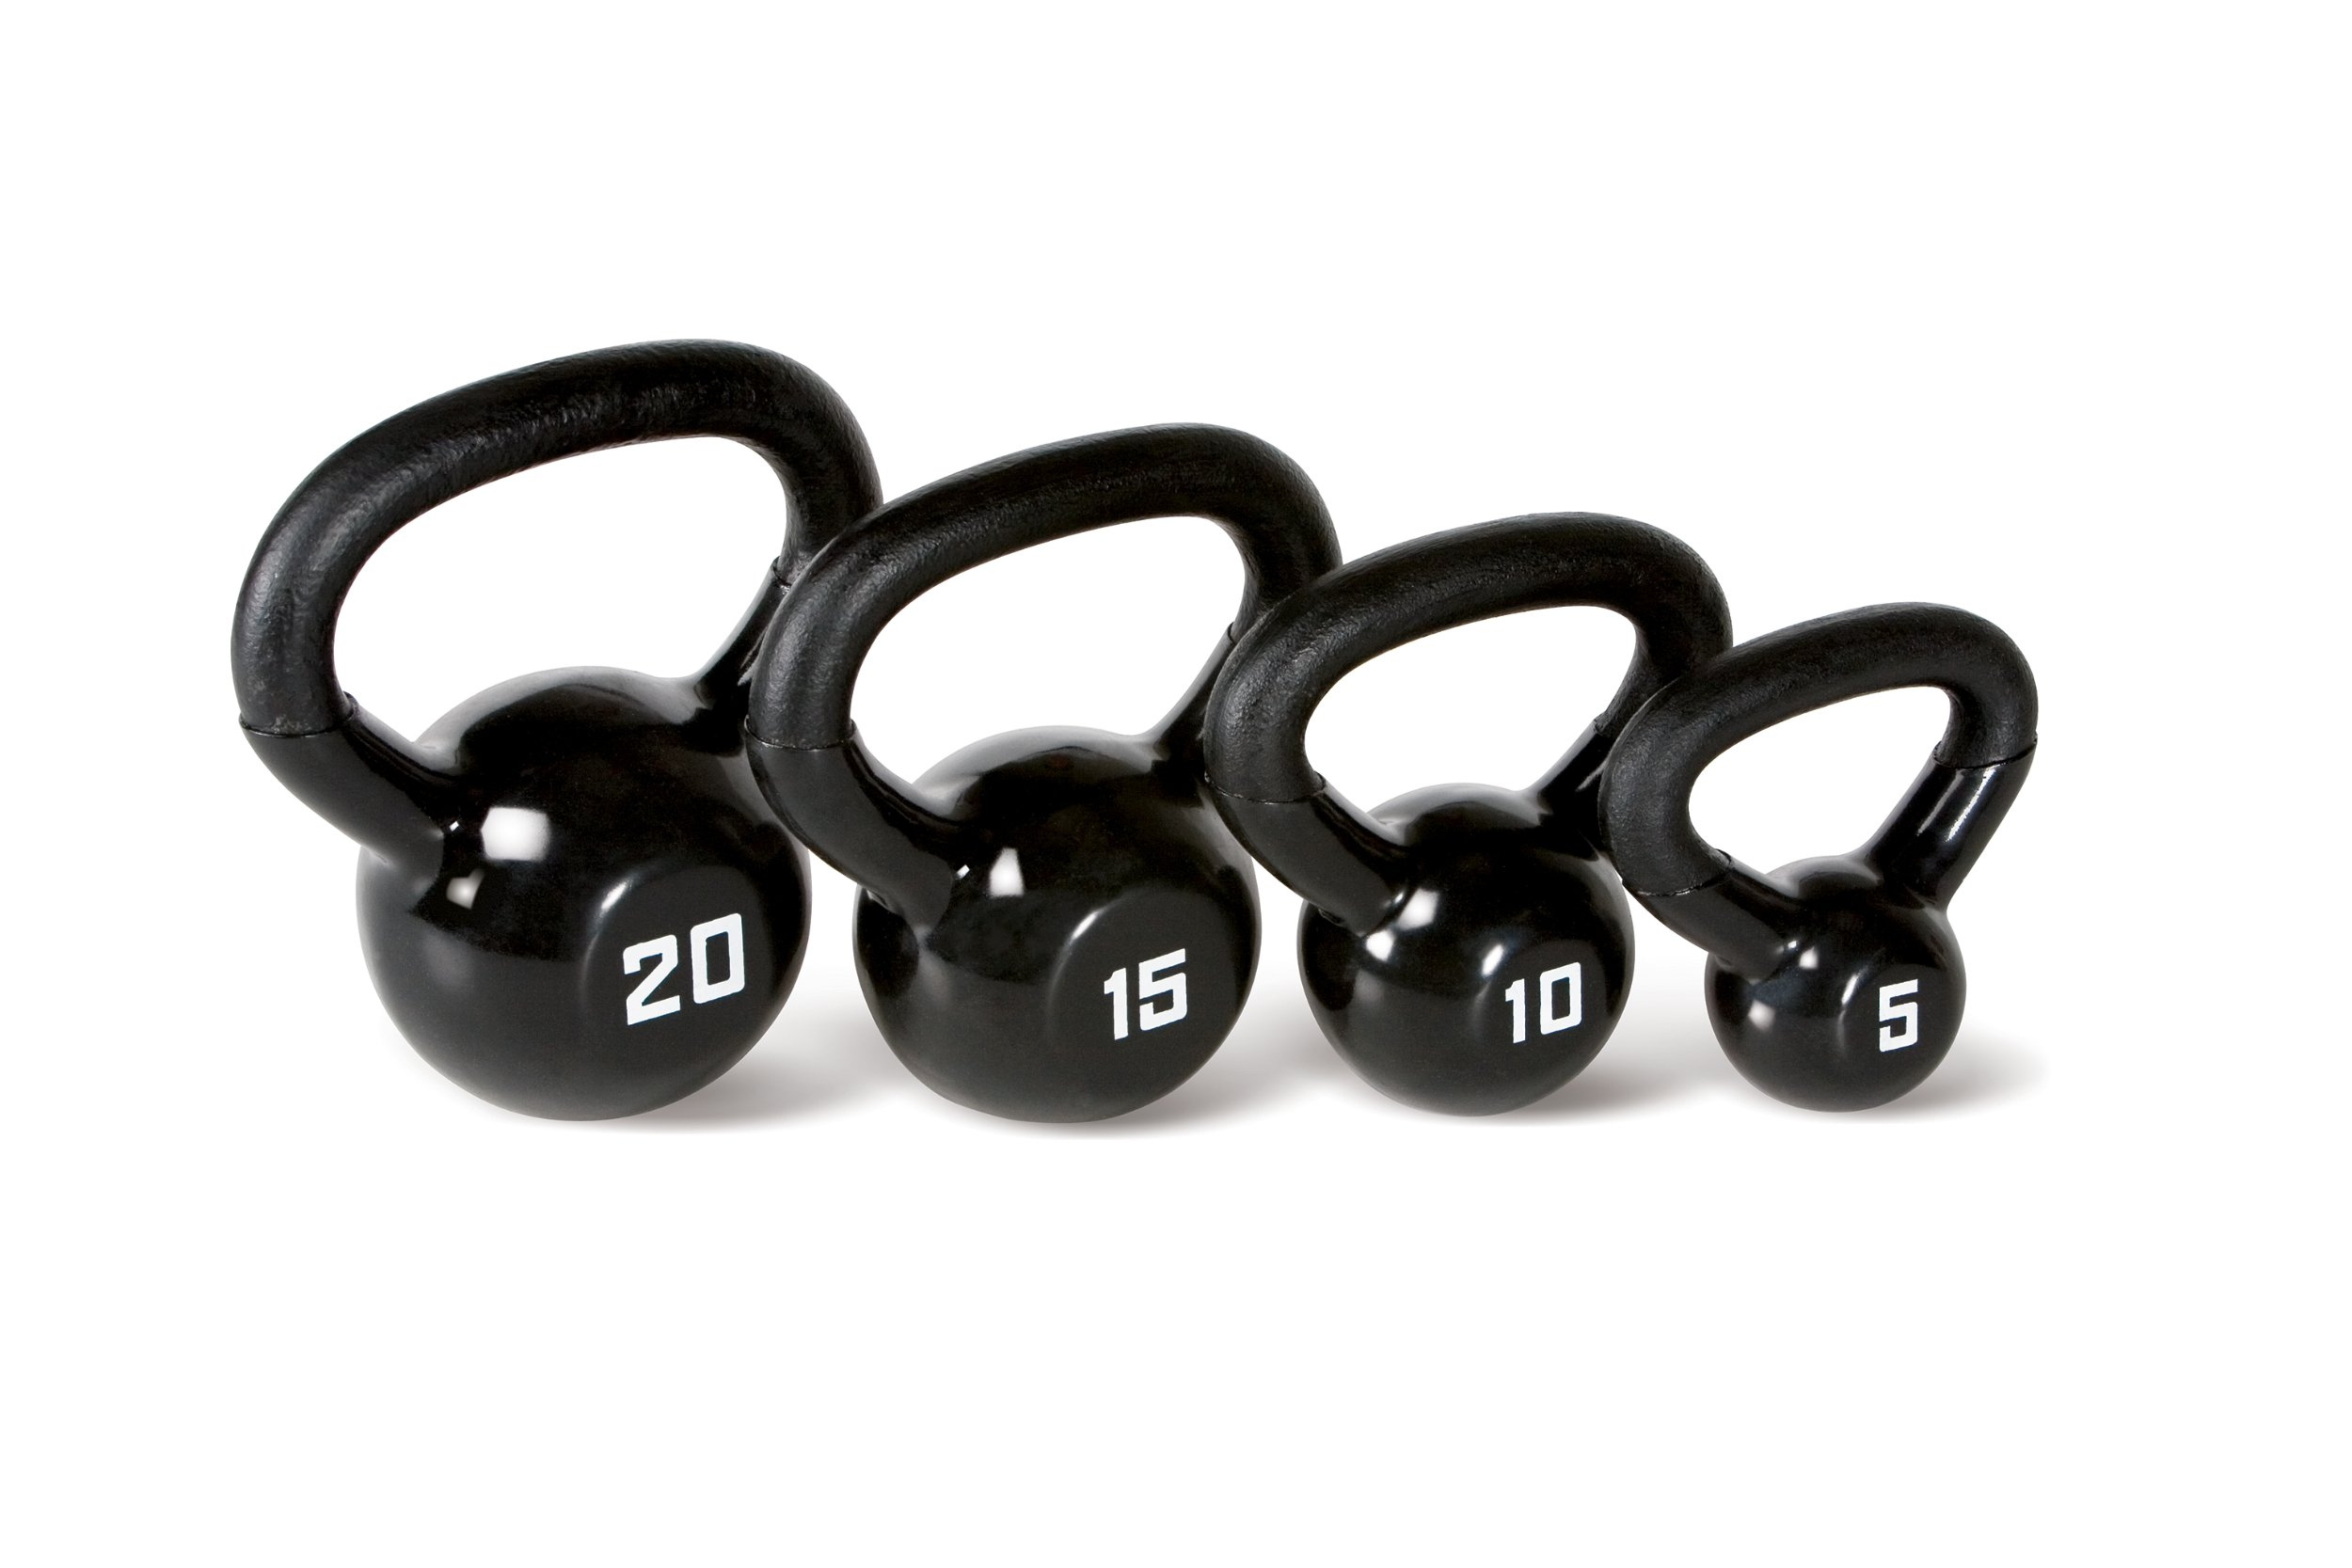 Marcy 50 lb. Kettlebell Weight Set with Exercise Chart and Four Kettlebells VKBS-50 by Marcy